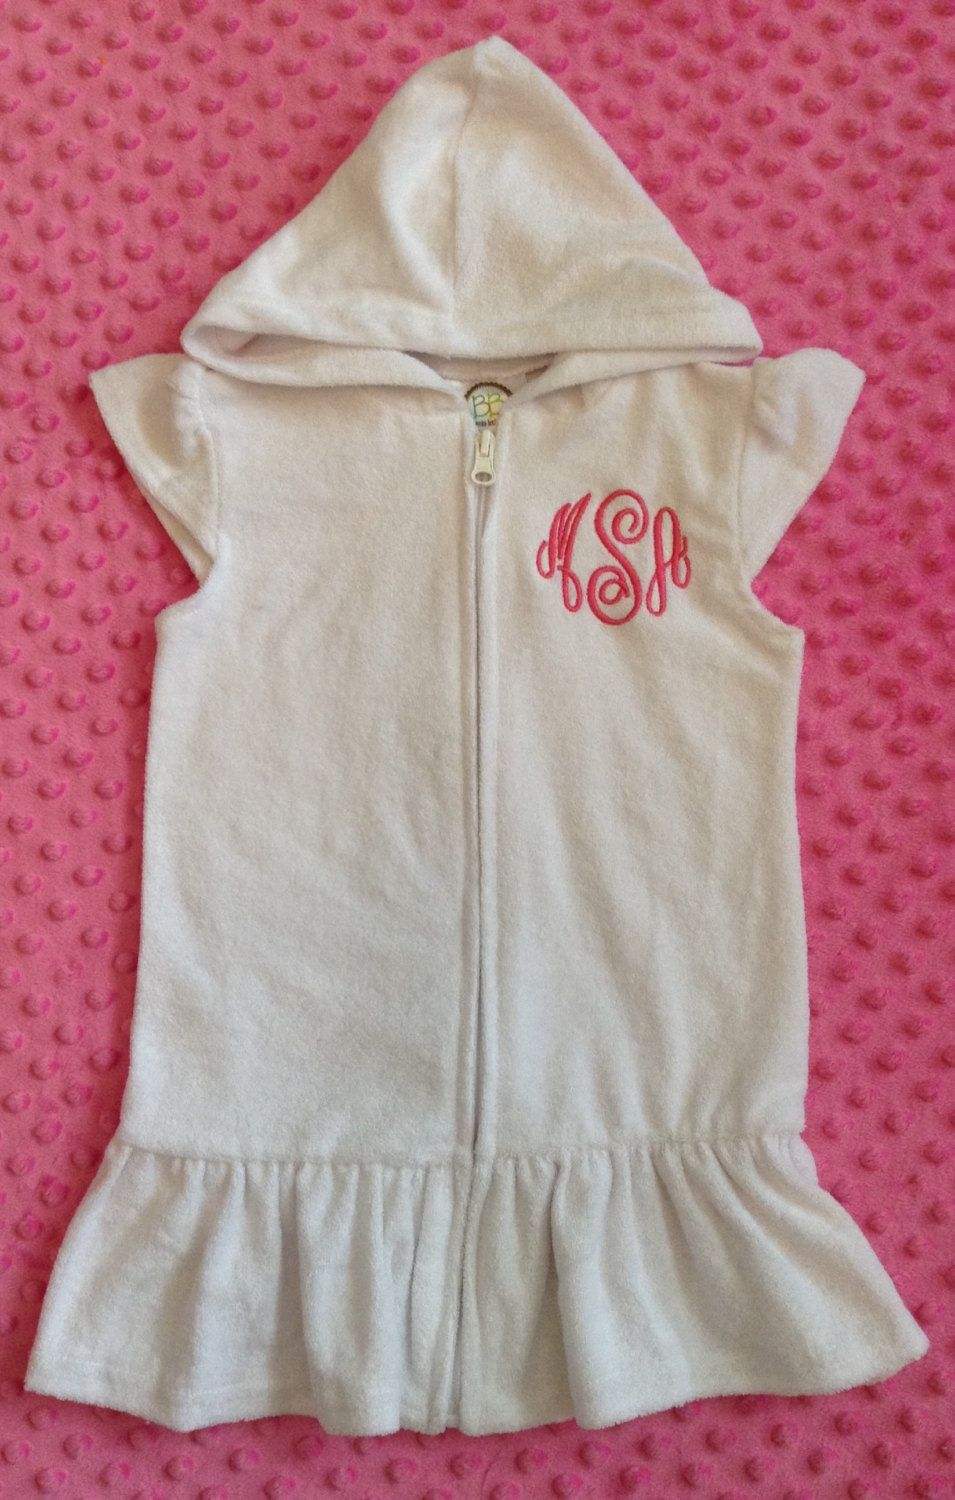 2a3255e2dbc07 Girl s Monogrammed Swimsuit Coverup-Terry Cloth Swim Coverup-Monogrammed  Coverup-Girls Clothing-Personalized Coverup-Birthday Gift- by  ButterflyStitchbyKZ ...